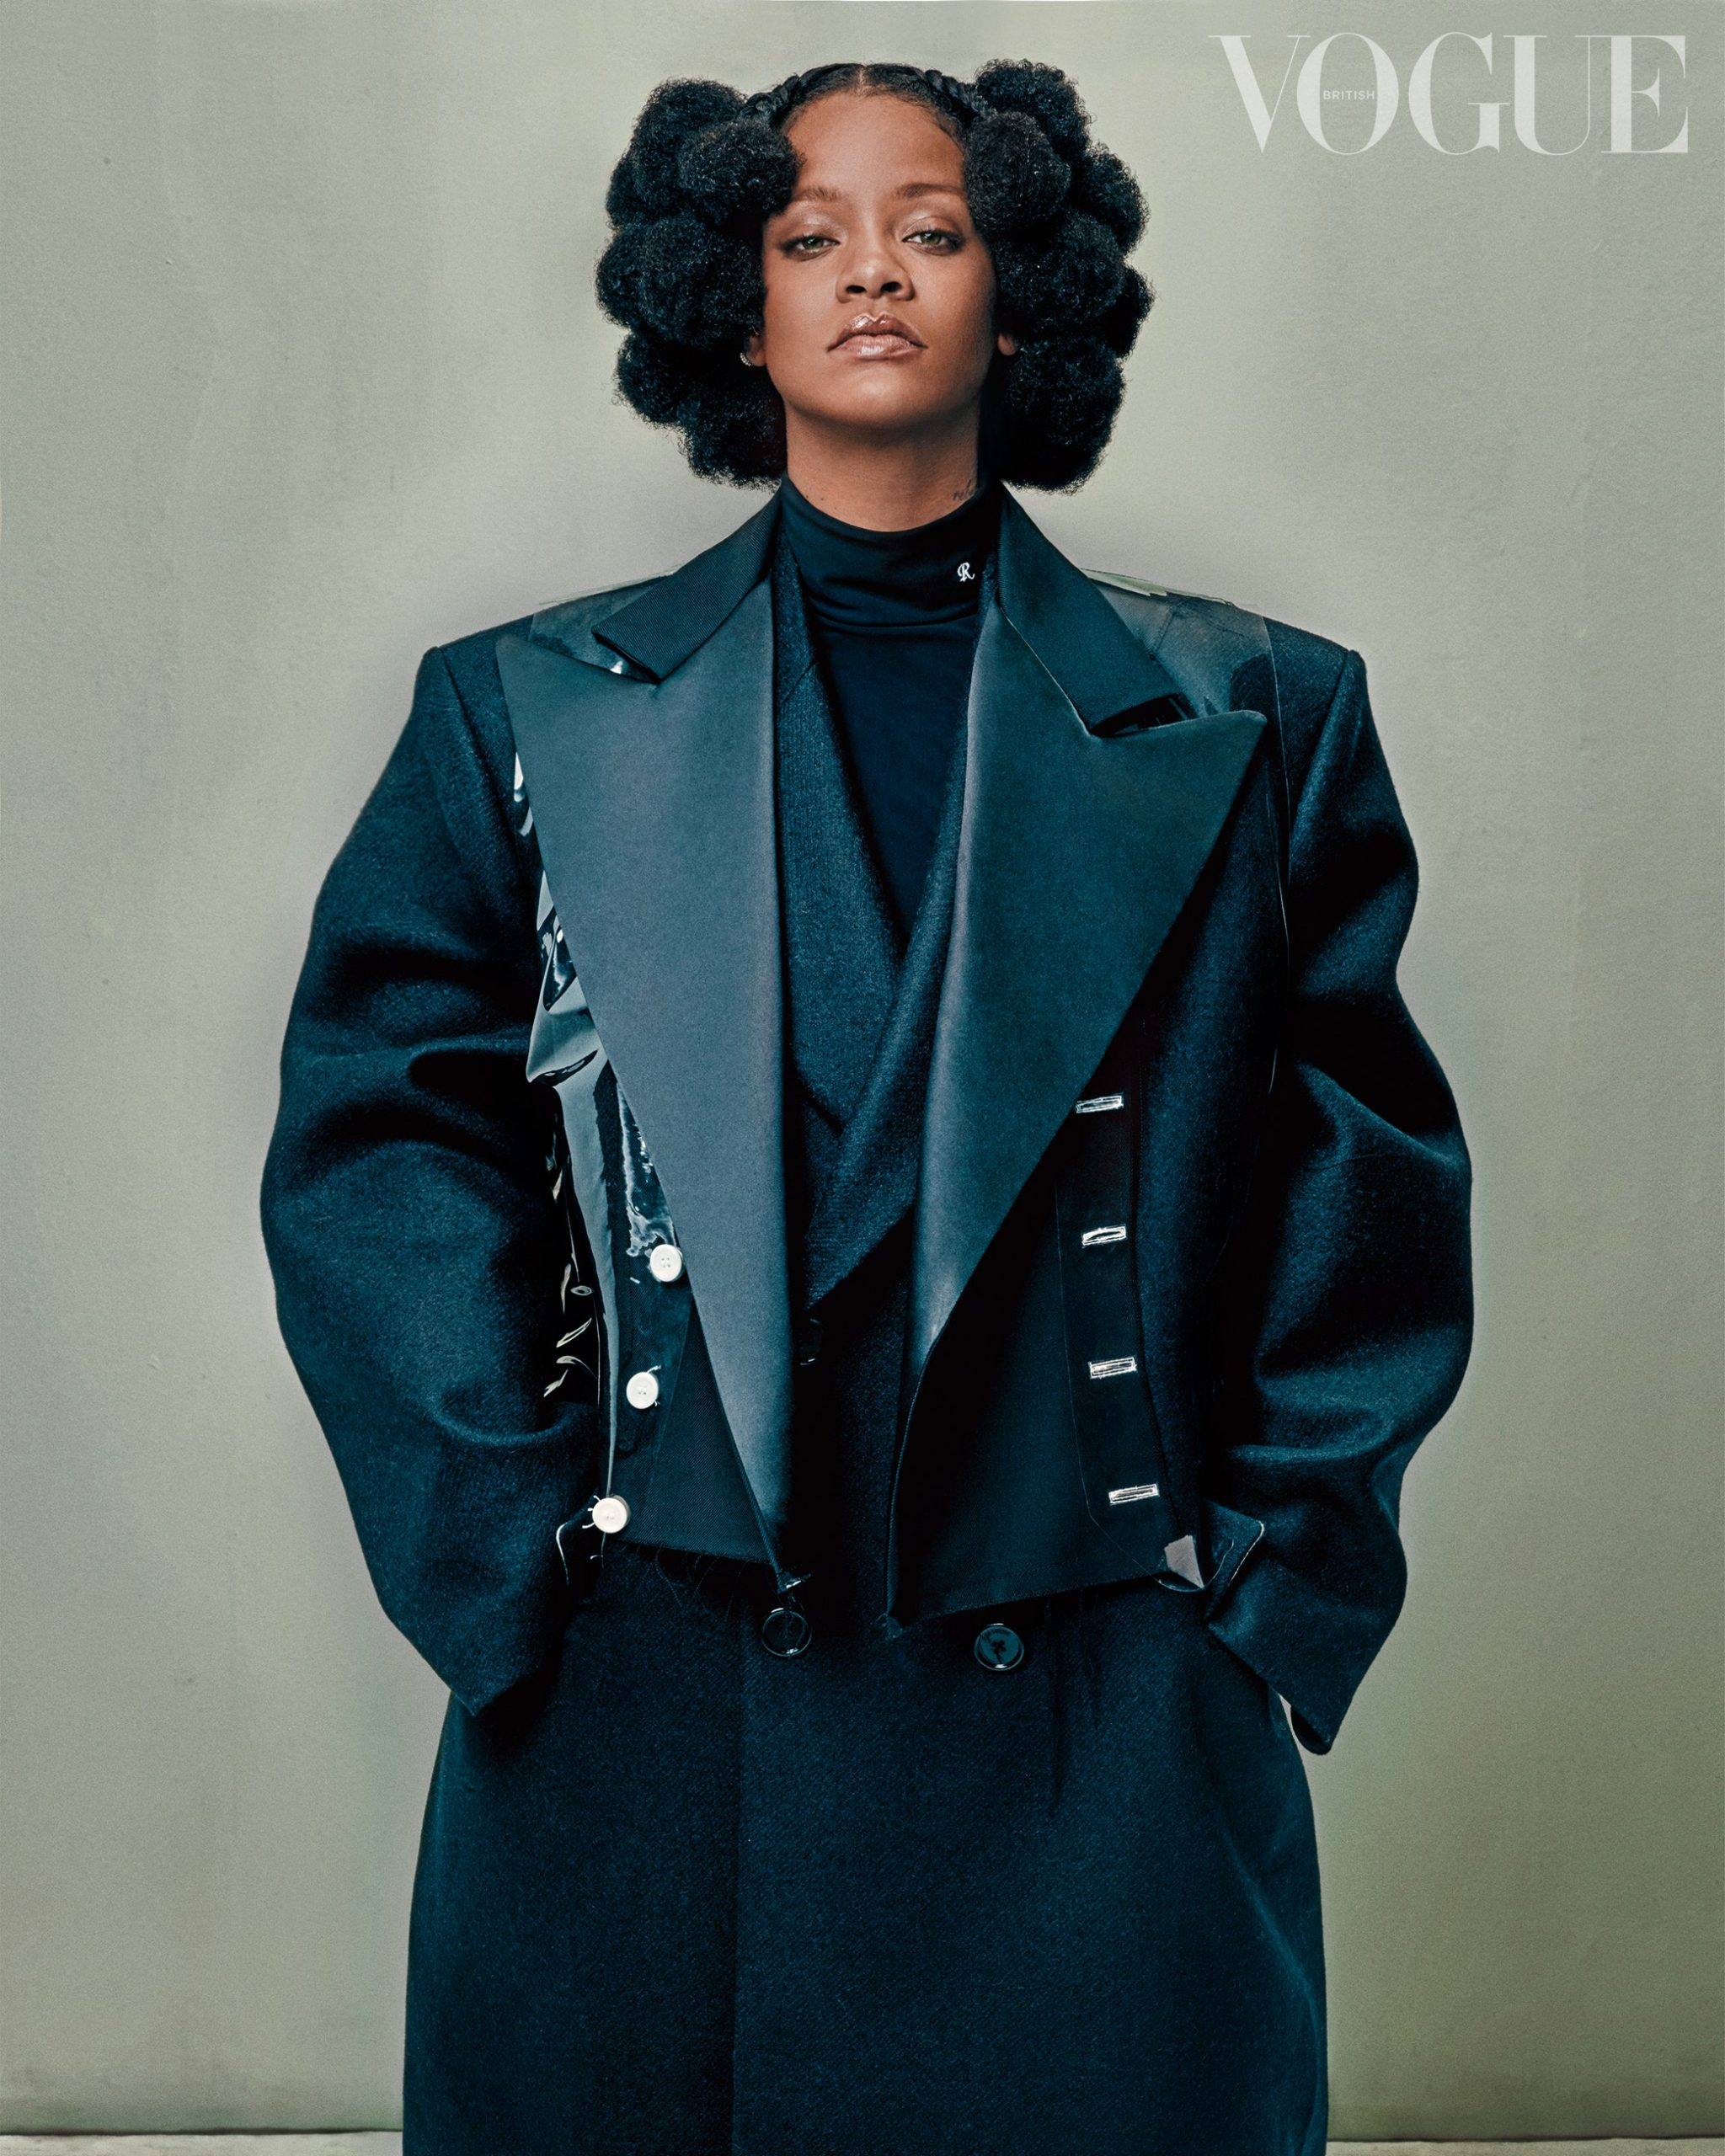 Rihanna covers May 2020 issue of British Vogue by Steven Klein